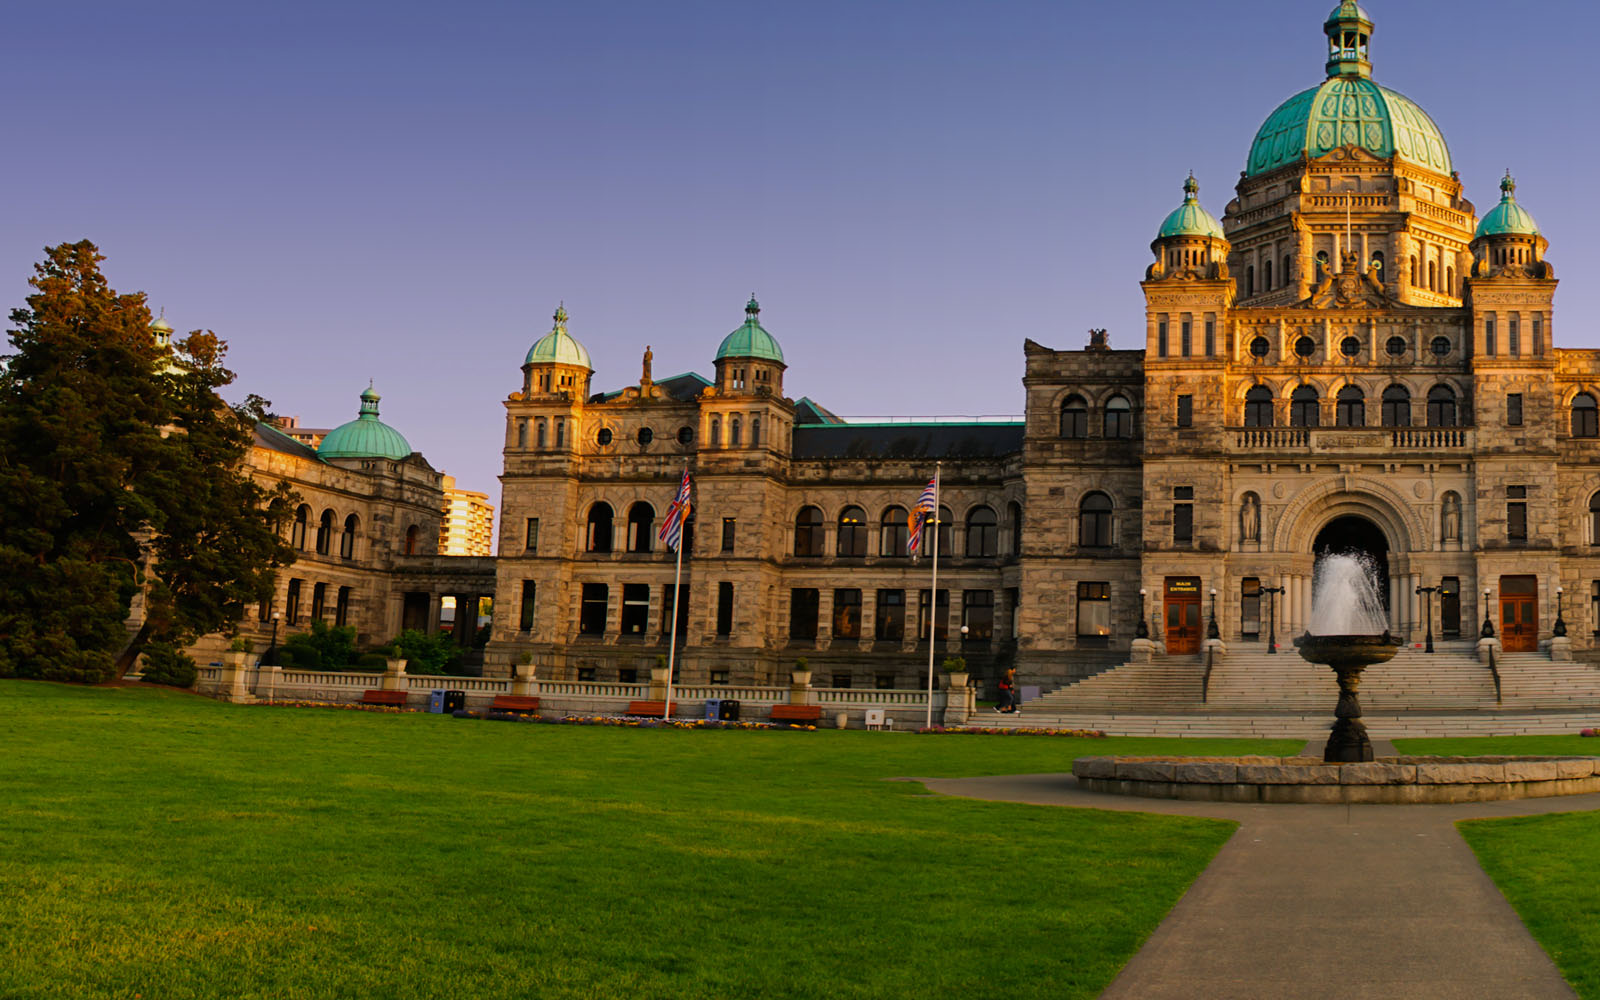 British Columbia Provincial Parliament Building